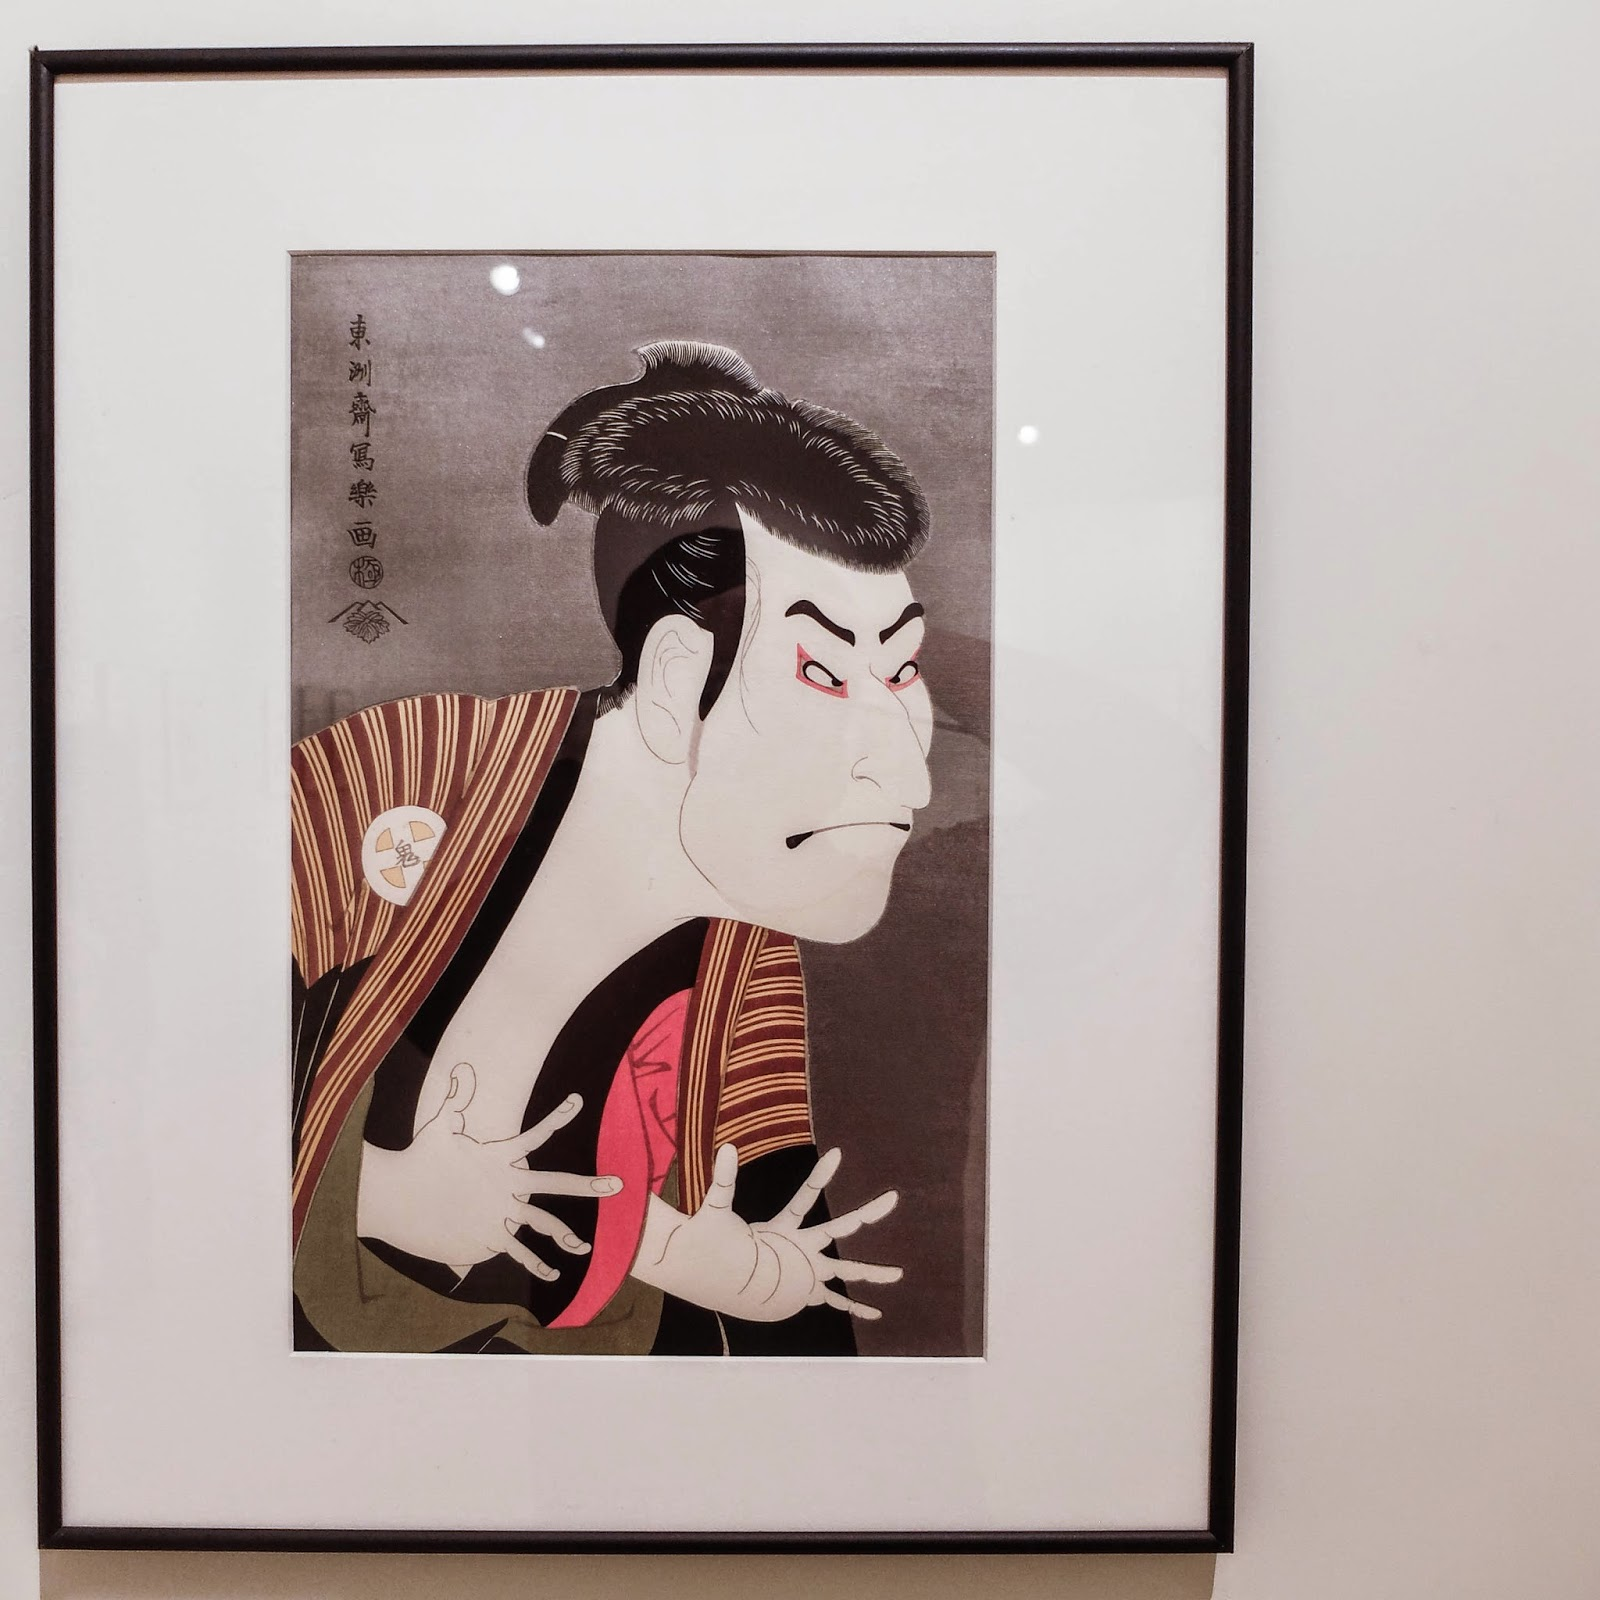 Ukiyoe Portraits exhibit - Otani Oniji as the Servant Edobei by Sharaku Toshusai